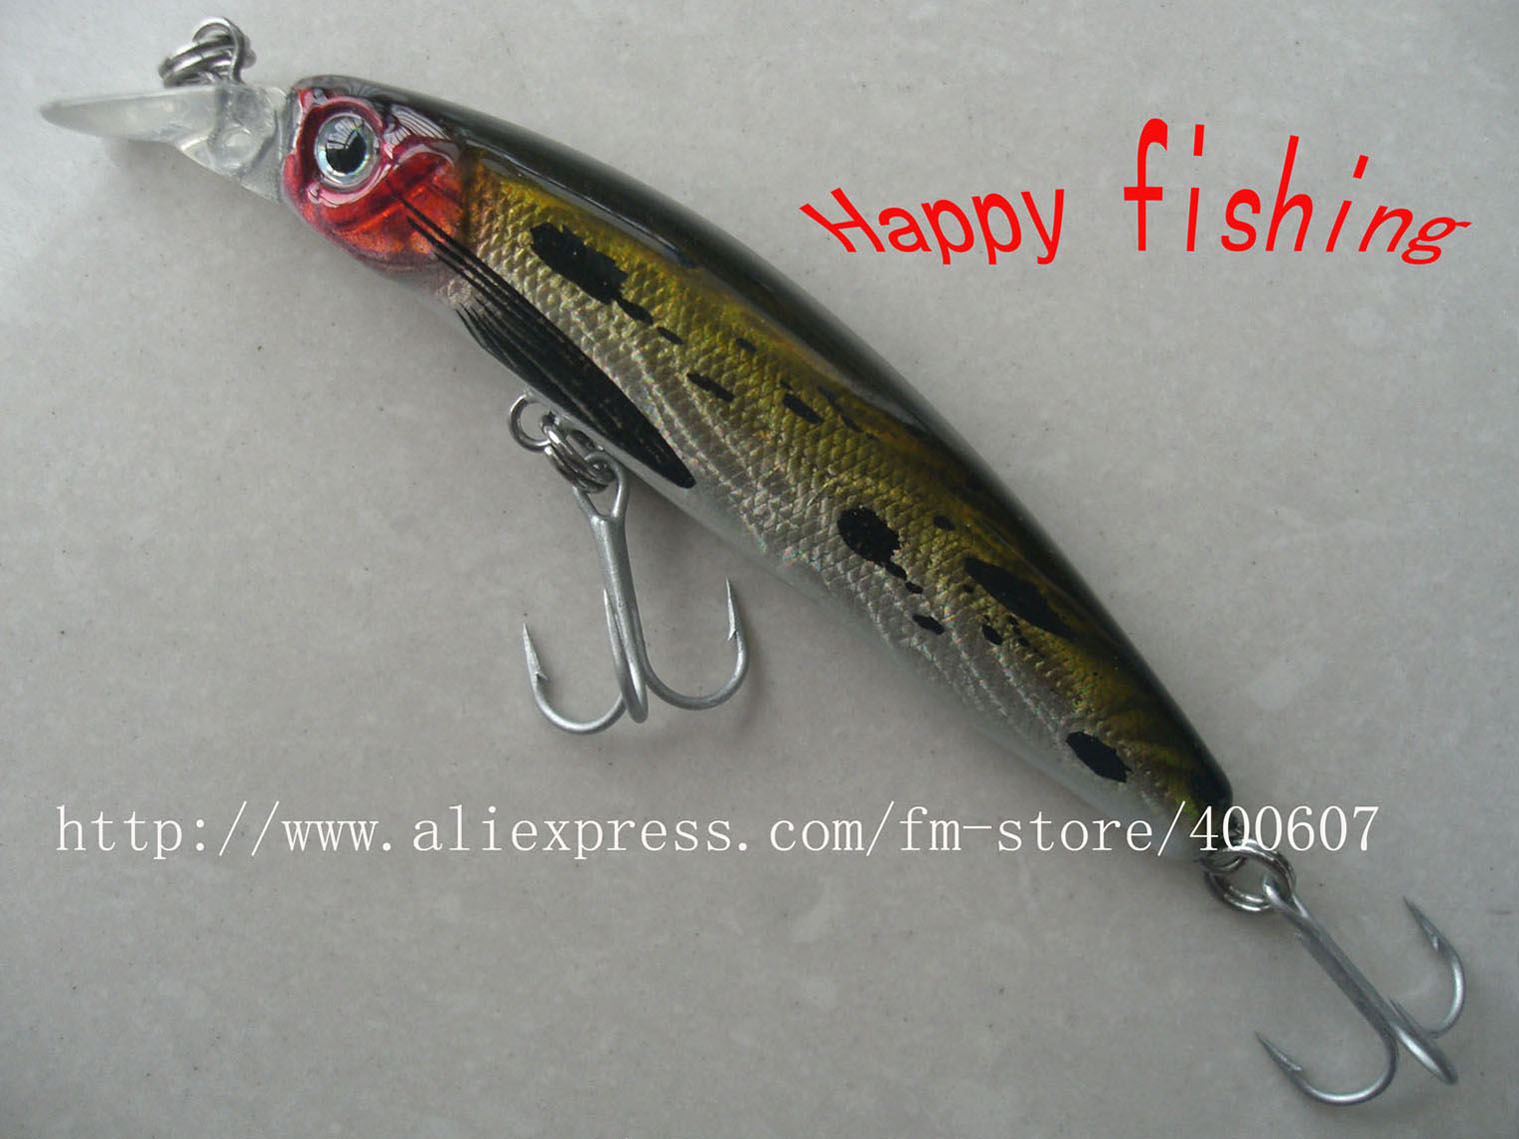 Japanese style bass terminator minnow fishing lure plastic for Japanese fishing lures